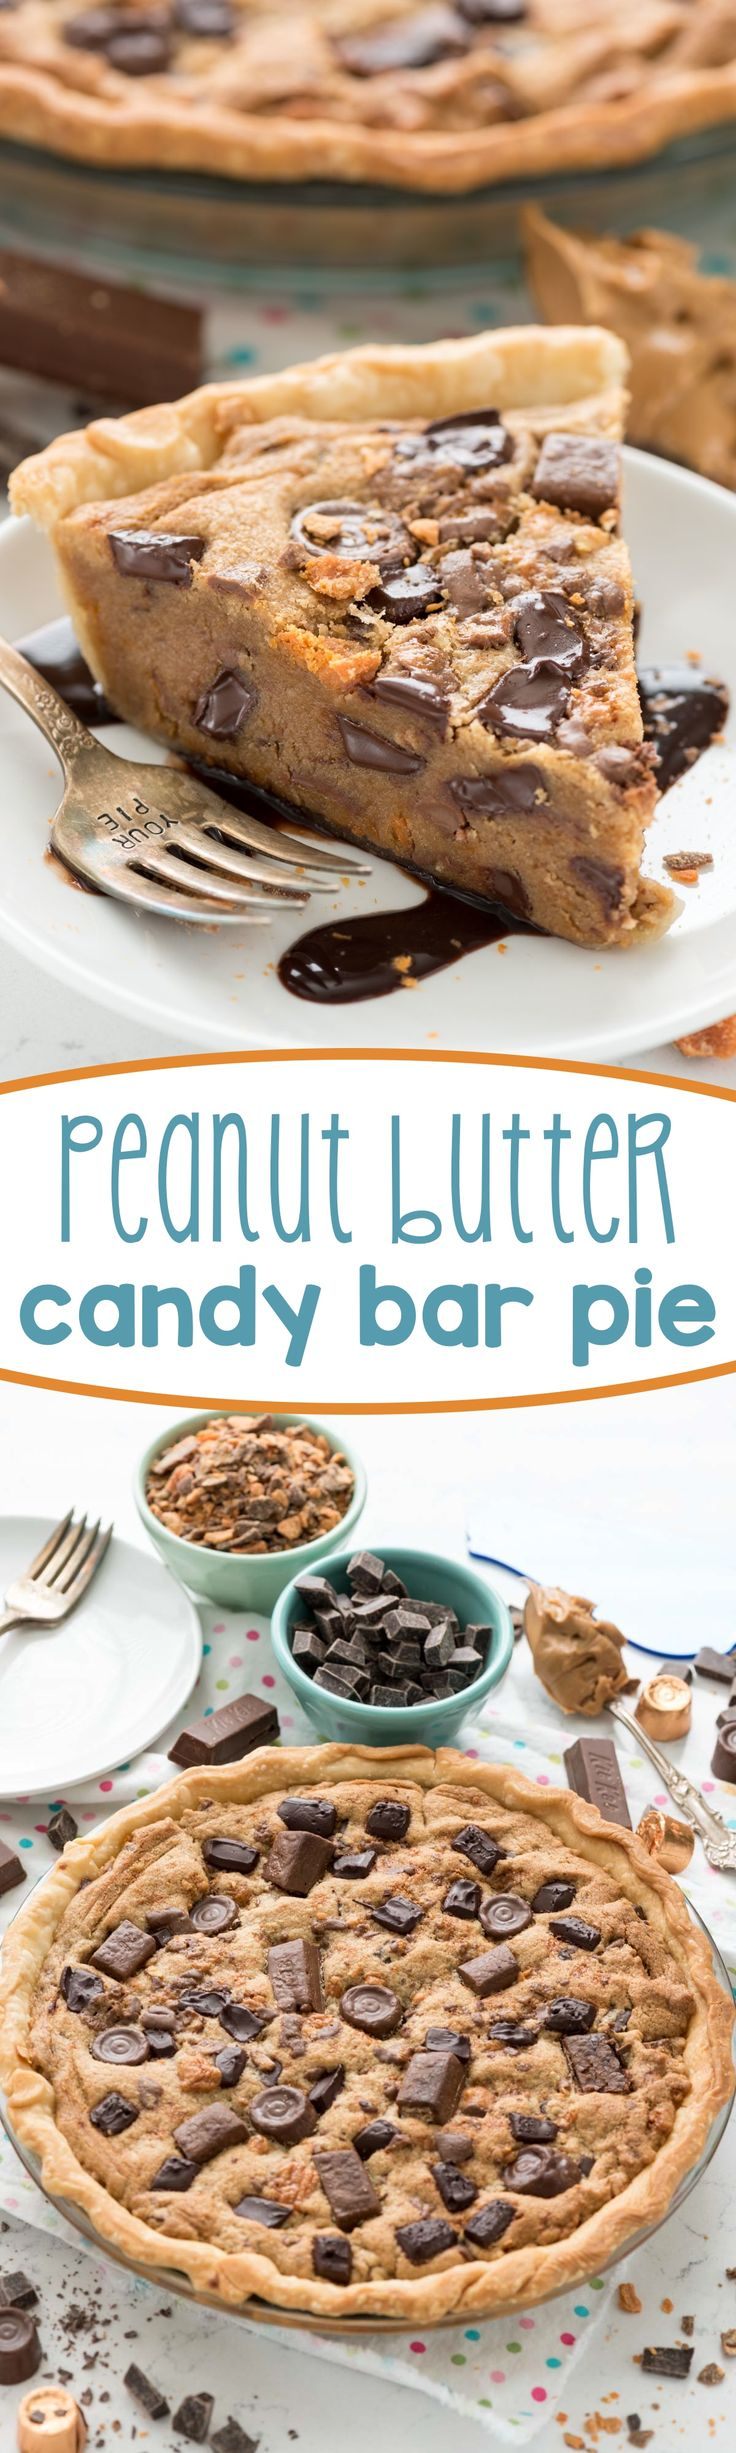 Peanut Butter Candy Bar Pie - this easy peanut butter cookie pie recipe is filled with candy bars! It's a giant cookie with a crust - heaven!: